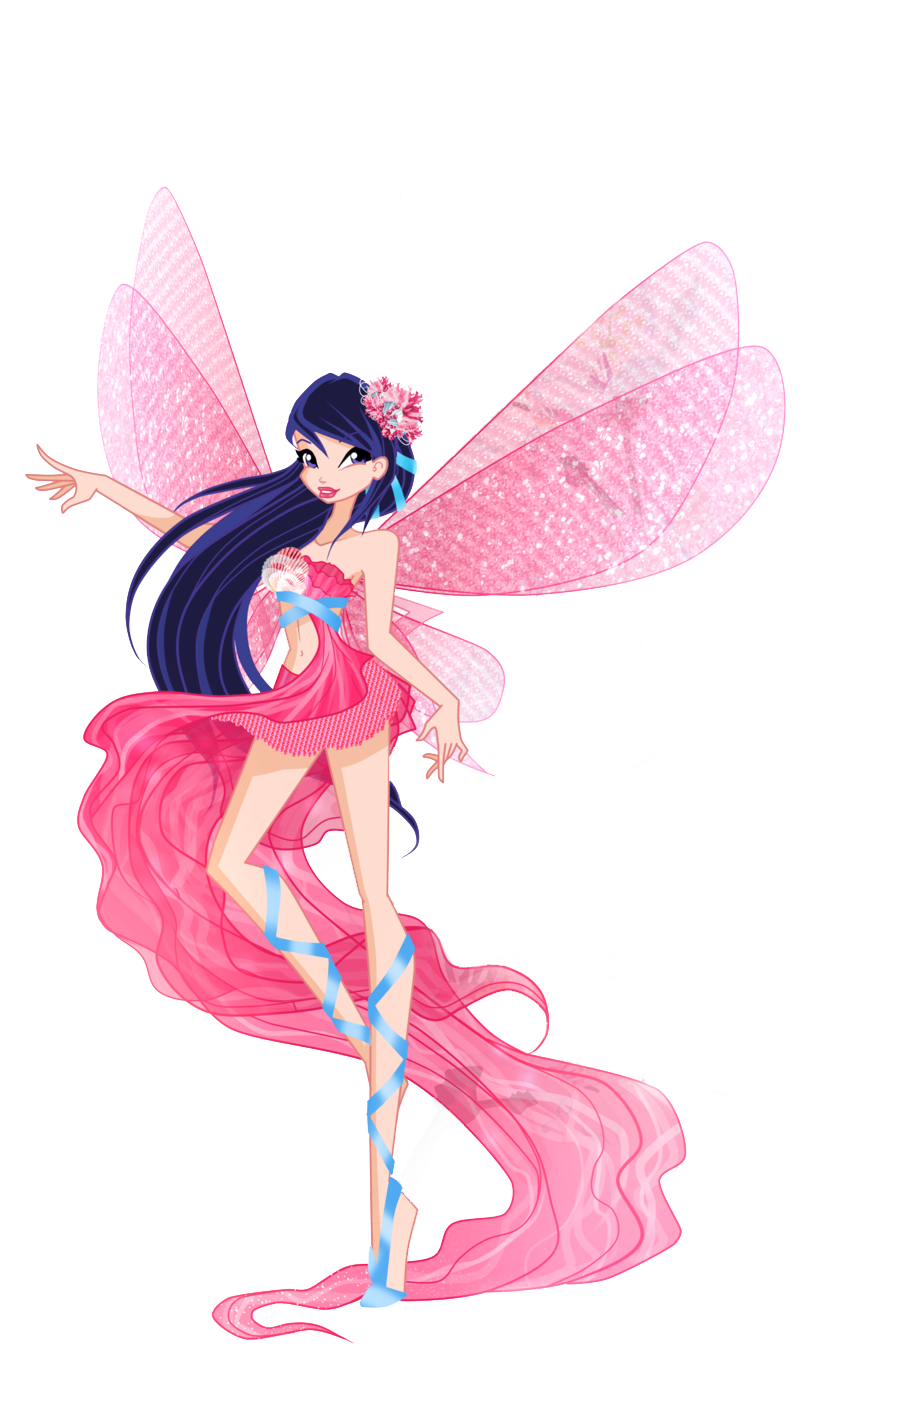 Winx Club Fairies: Some pictures of Musa